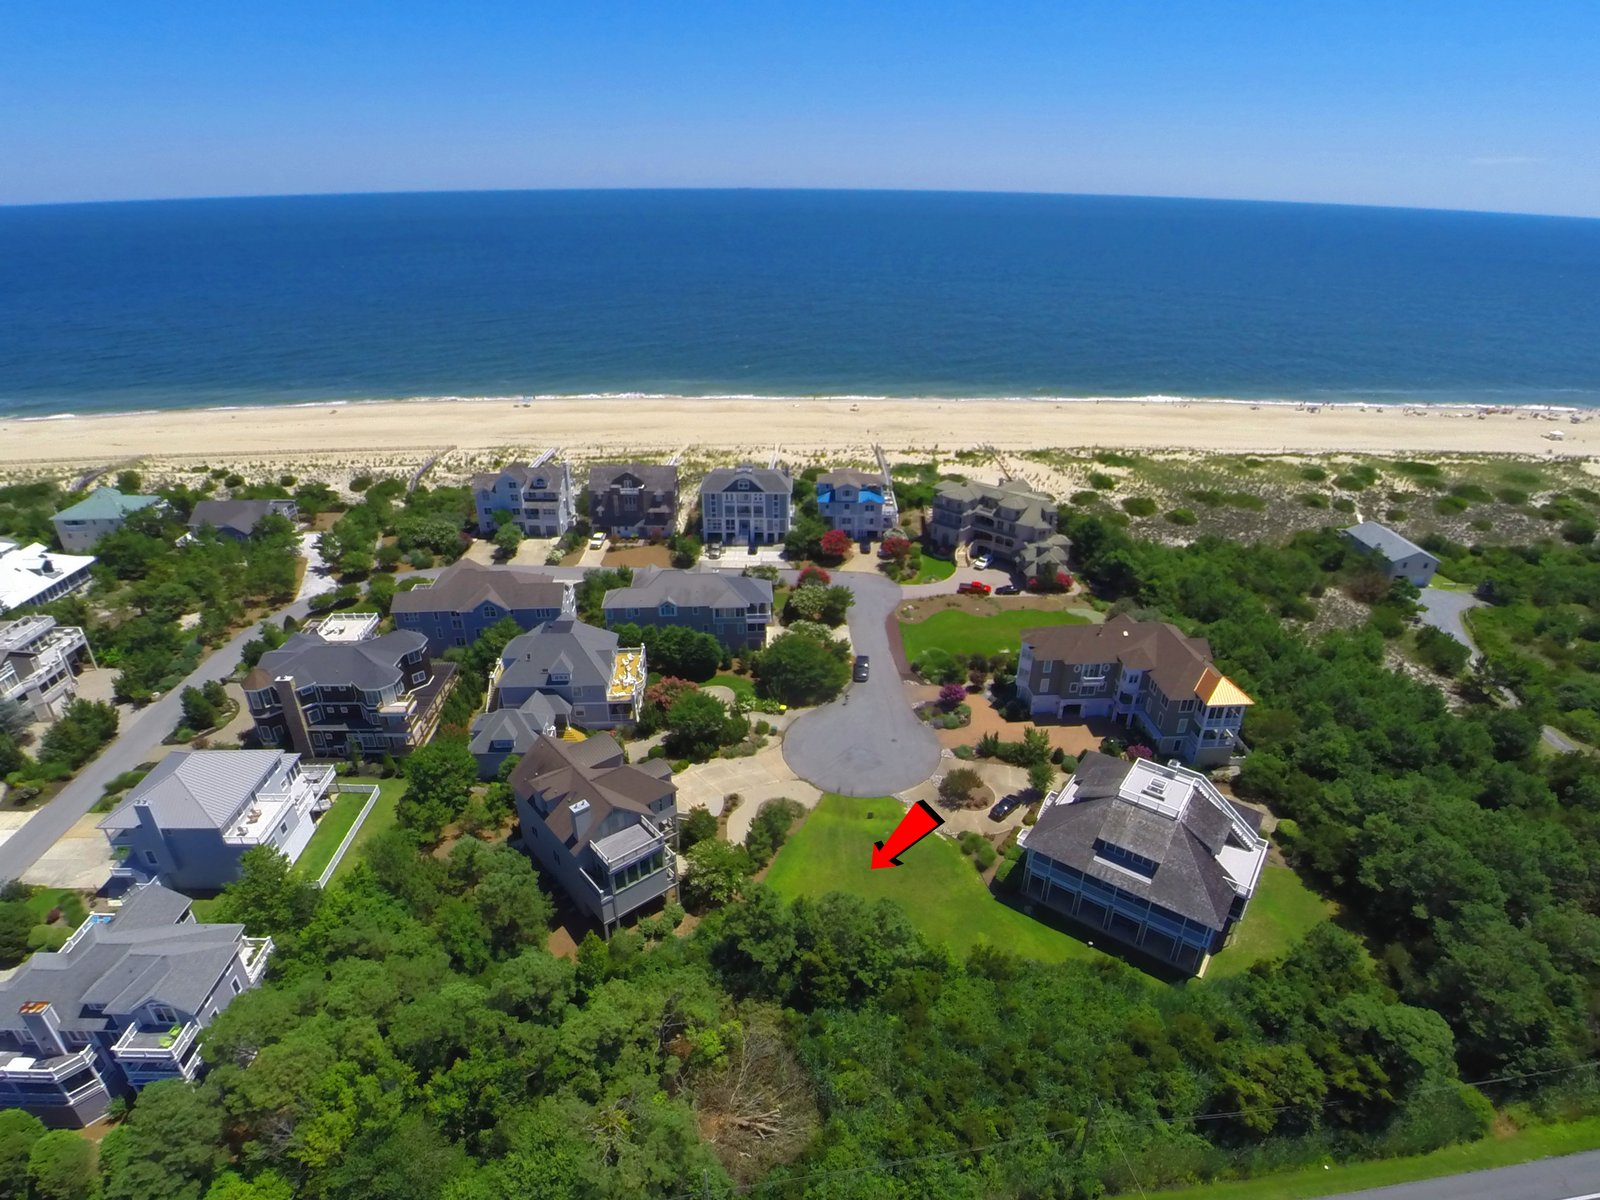 Property For Sale at Lot 8 Hall Avenue, Rehoboth Beach, DE 19971